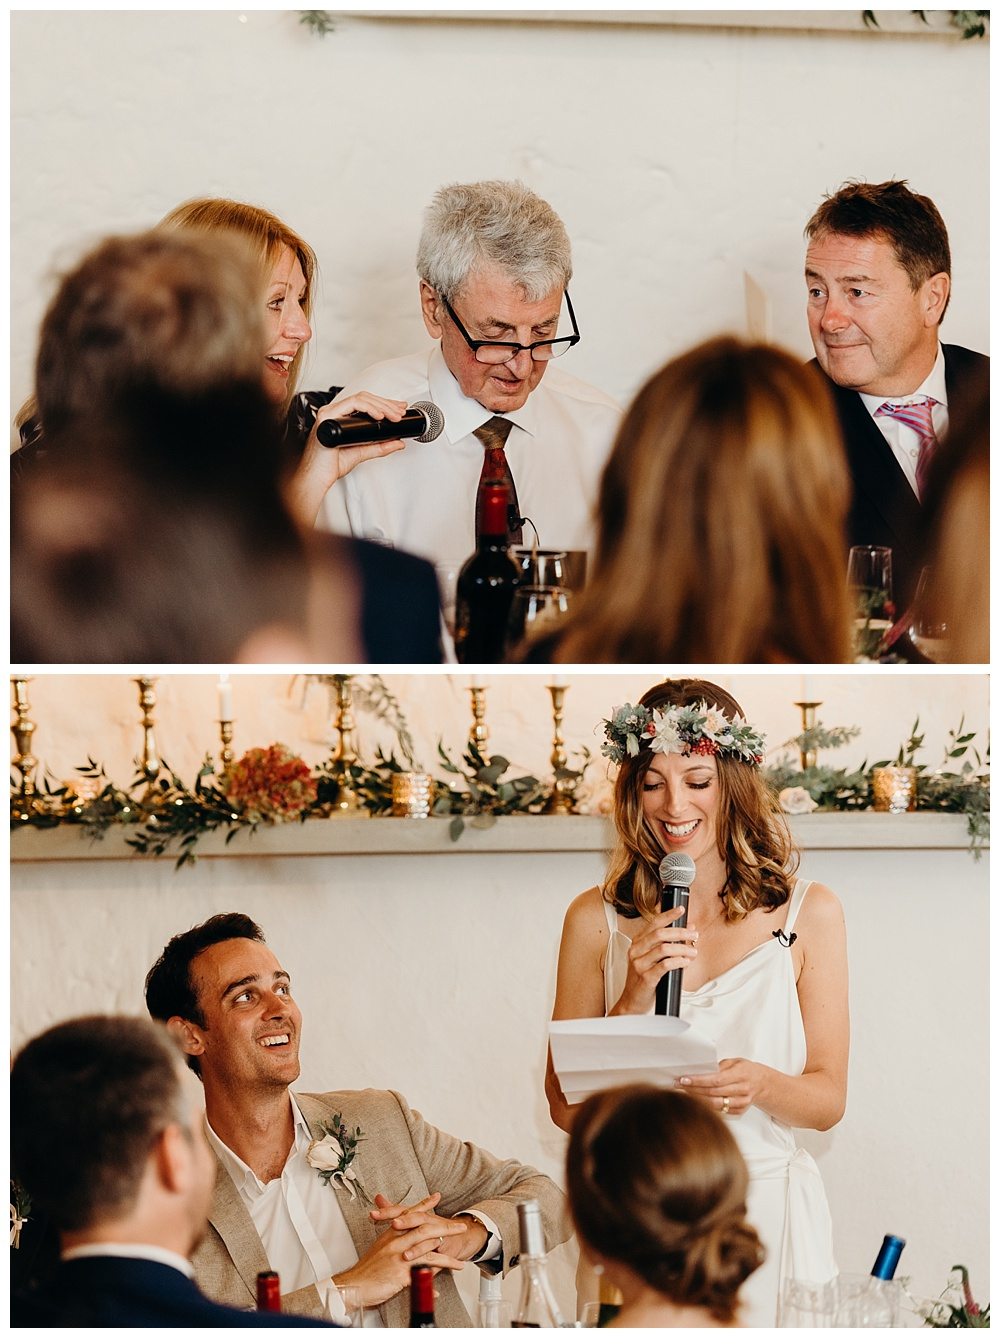 Bordeaux wedding photographer - father of the bride and the bride give speeches